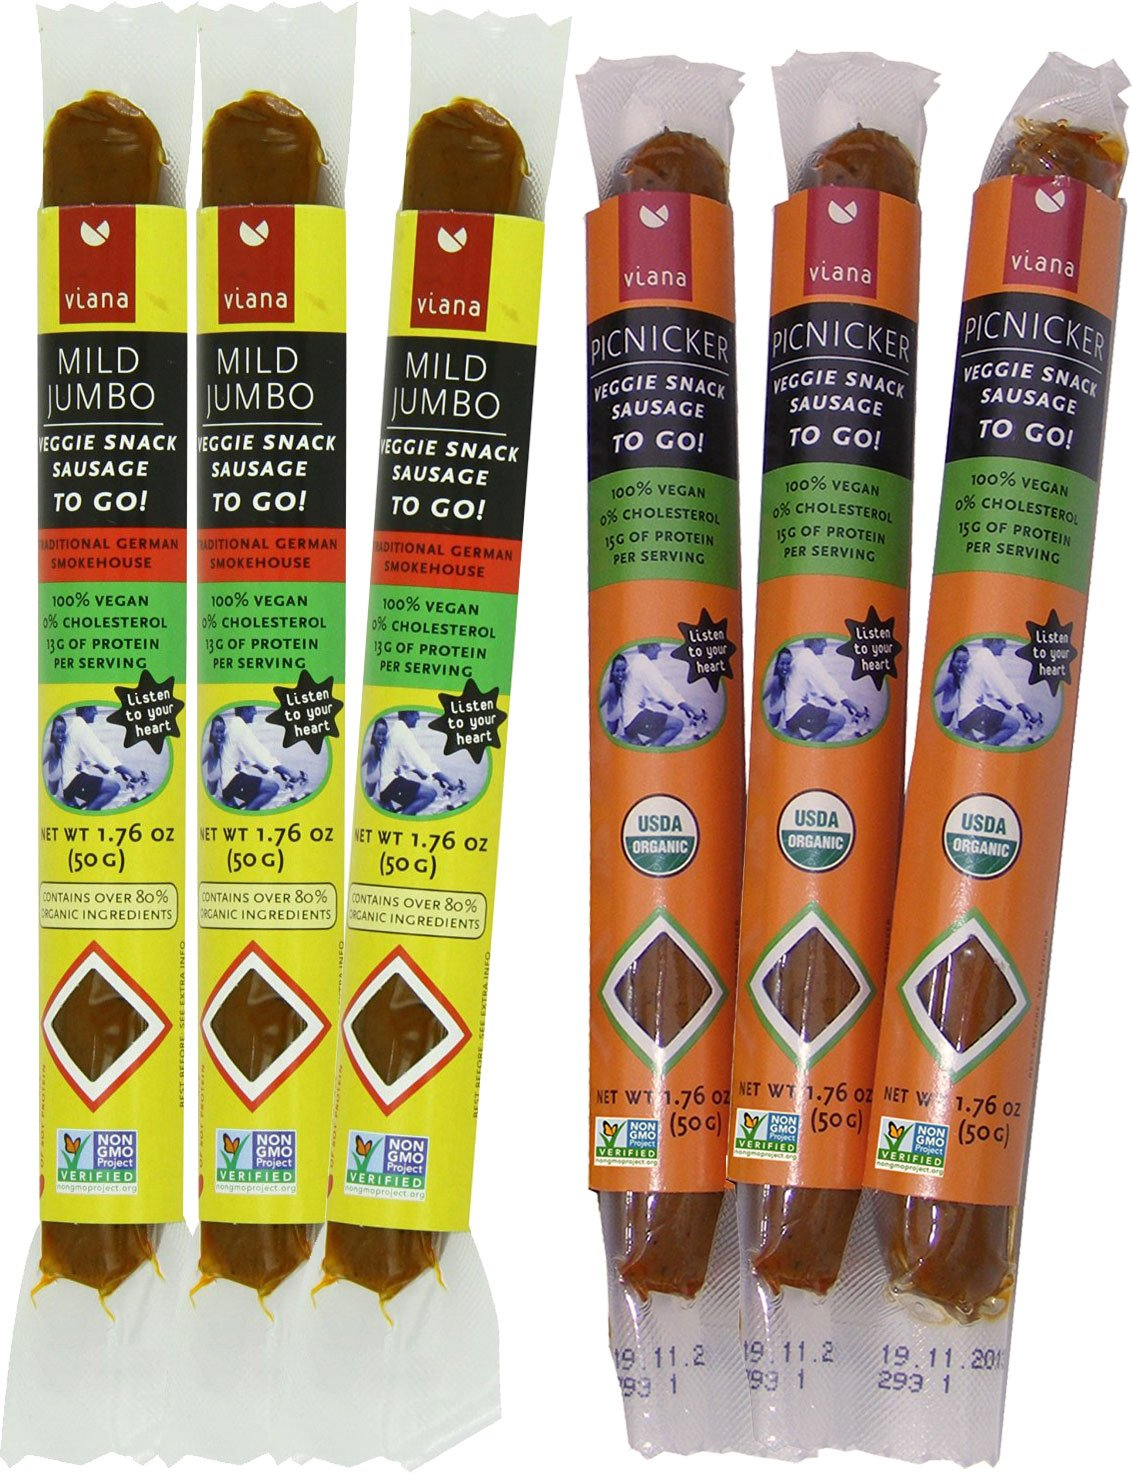 Viana - Veggie Snack Sausages, 1.76 Once - Mixed Pack (Pack of 6)